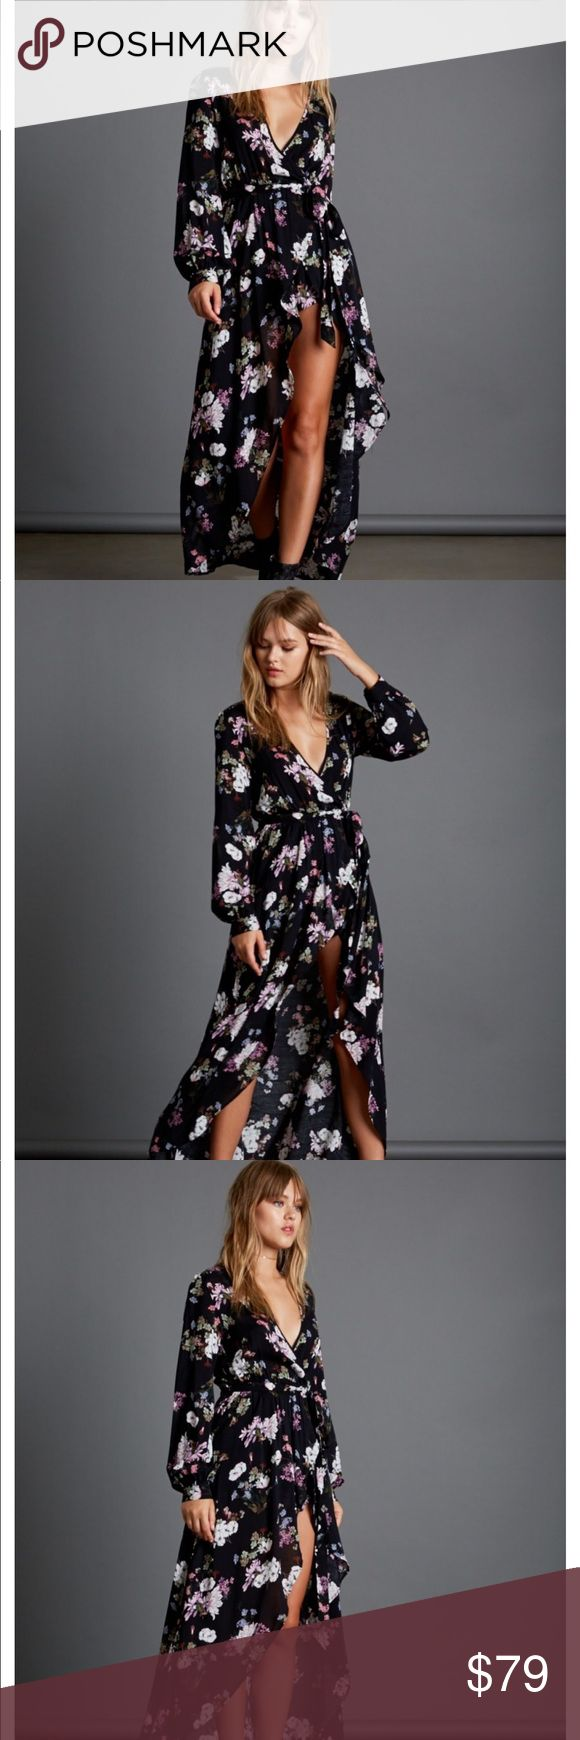 BEAUTIFUL MAXI FLORAL ROMPER COTTON CANDY Description to follow upon arrival. COTTON CANDY Pants Jumpsuits & Rompers